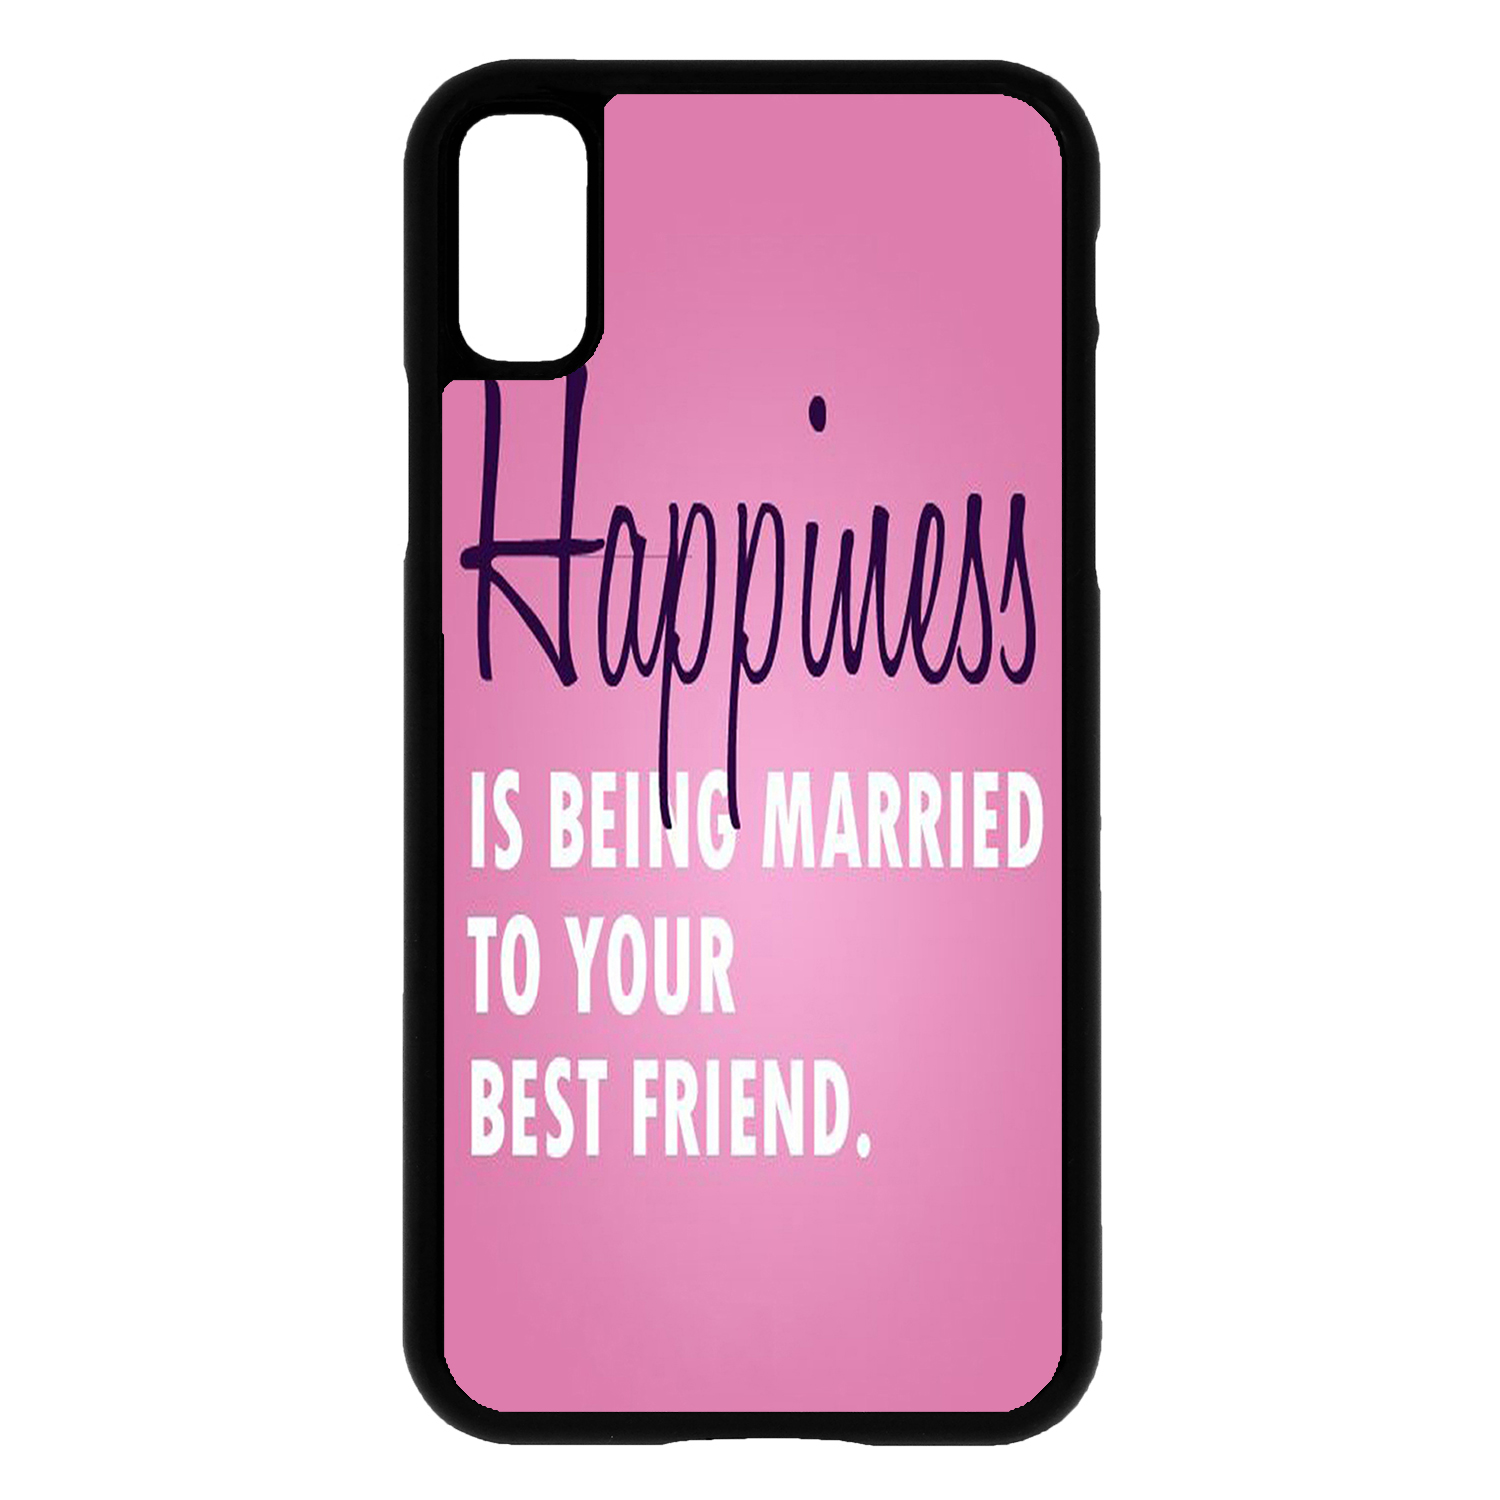 Sayings Quotes Case Cover for Apple iPhone 6 & Plus A6